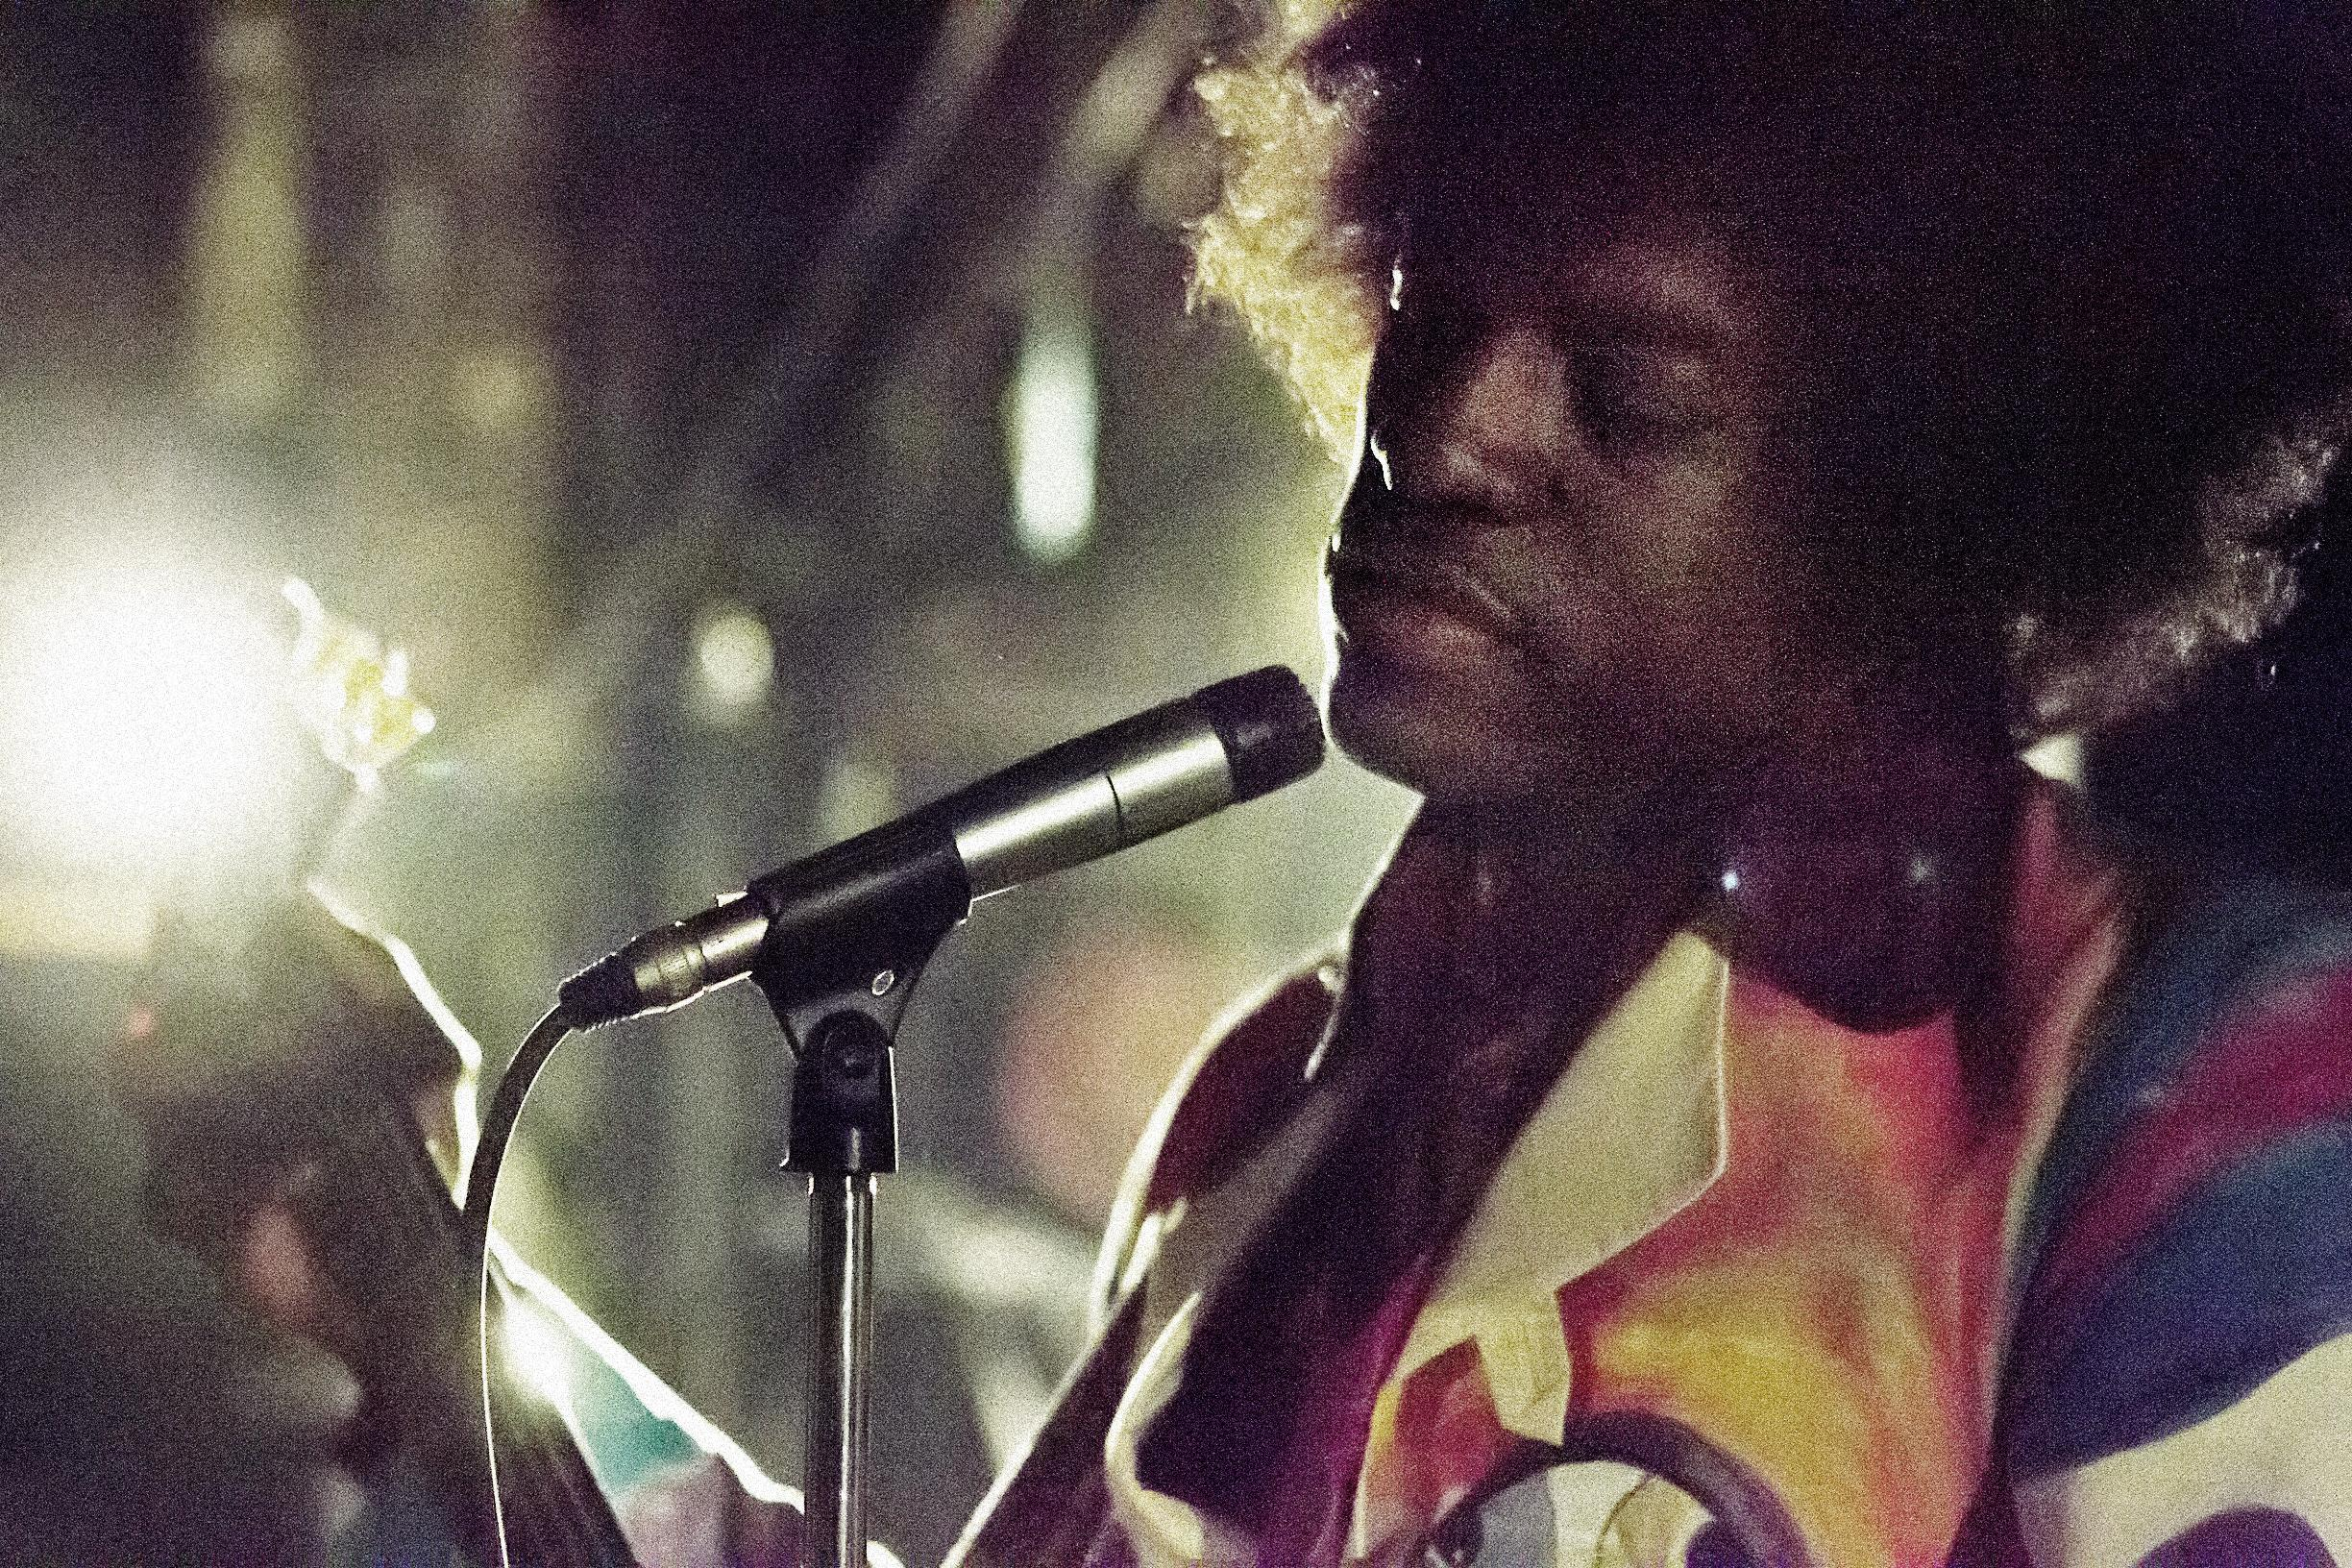 a review of the portrayal of jimi hendrix in jimi all is by my side a biopic film by john ridley Actors working in film today six - the fighter: part biopic and part in the portrayal of marginalized all or nothing my review was being sniffed.